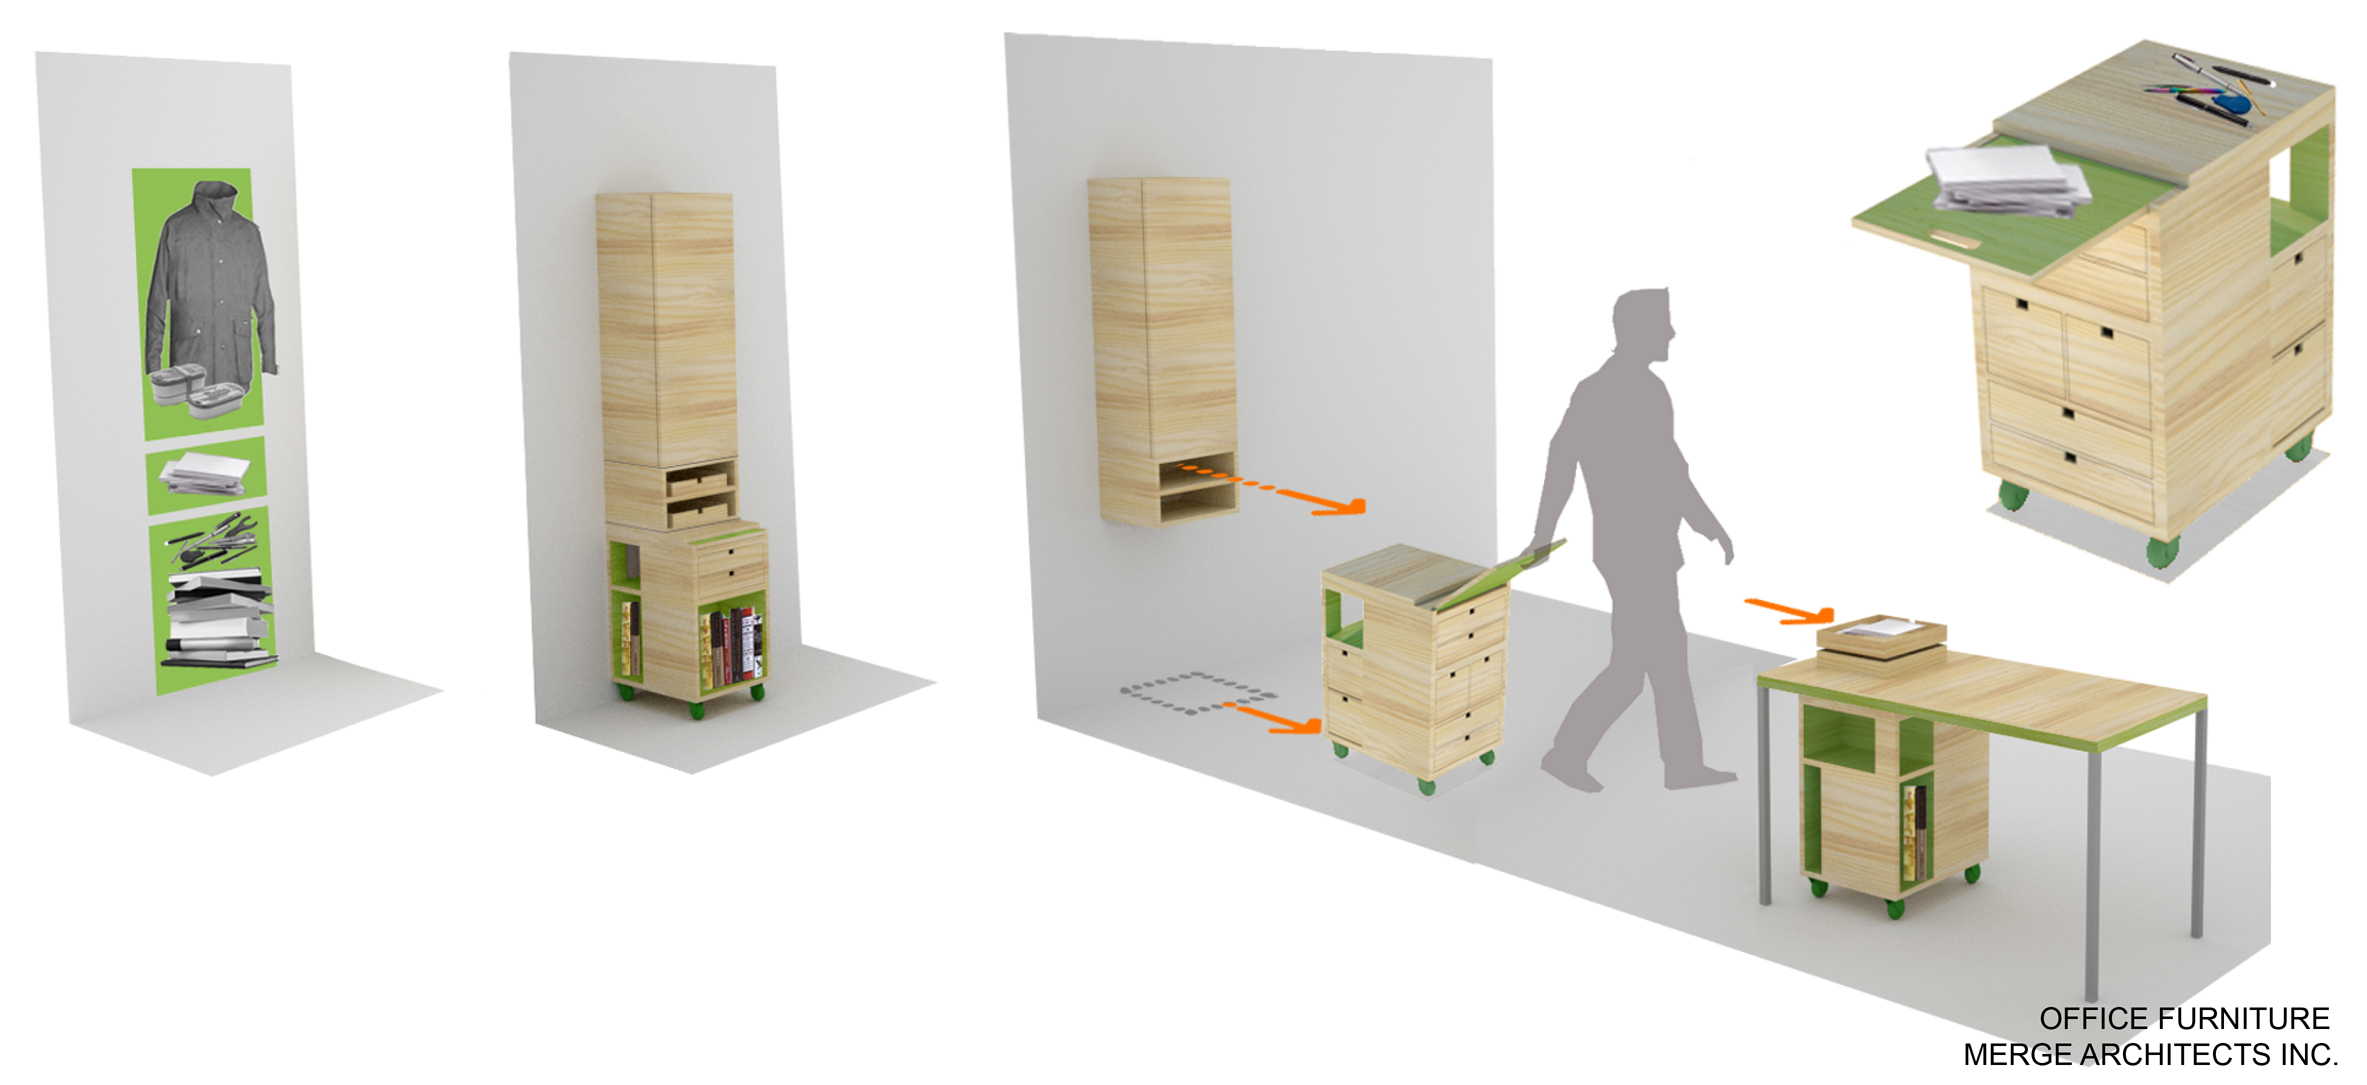 PORTABLE OFFICE FOR ONE, WITH MERGE ARCHITECTS